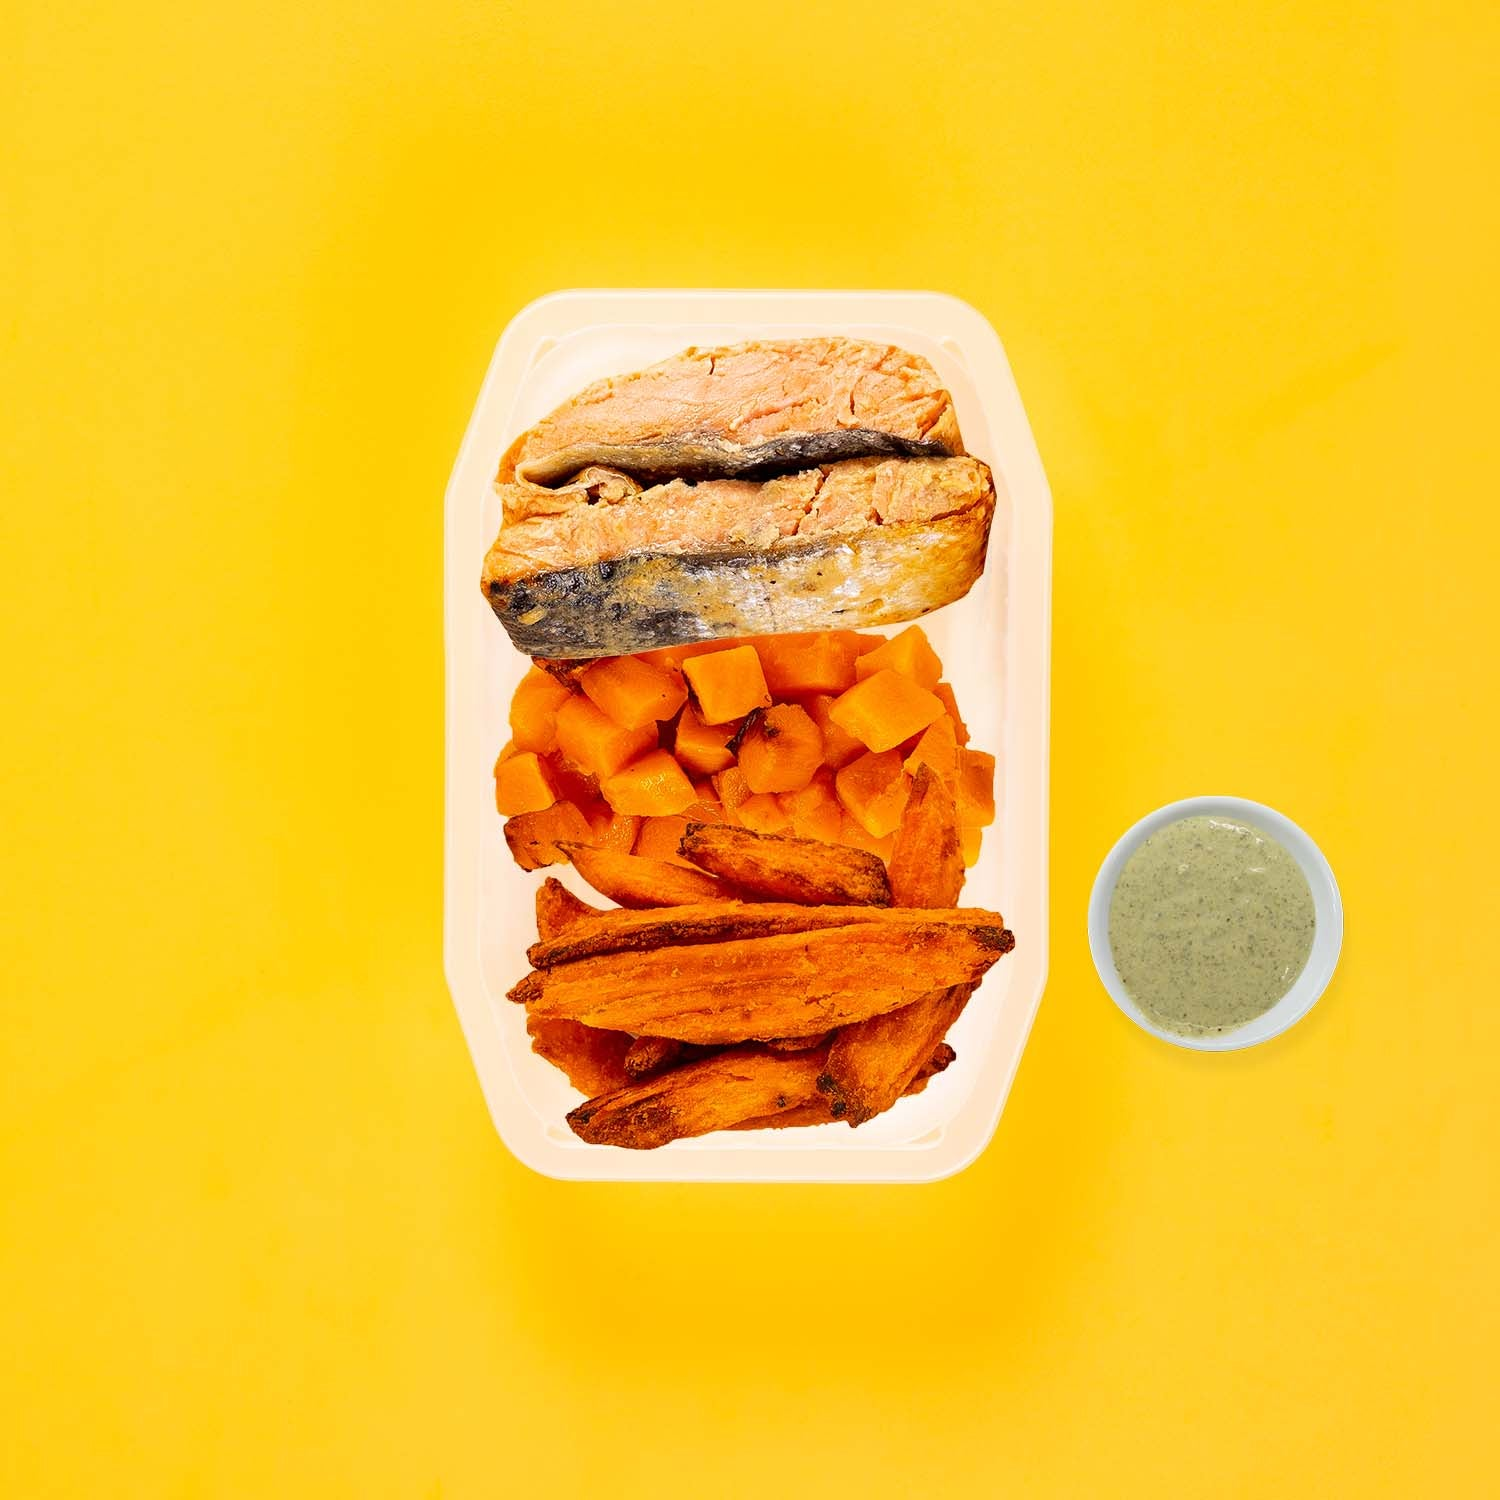 50g Miso Salmon 150g Coconut Pumpkin 150g Sweet Potato Wedges Pesto Cream